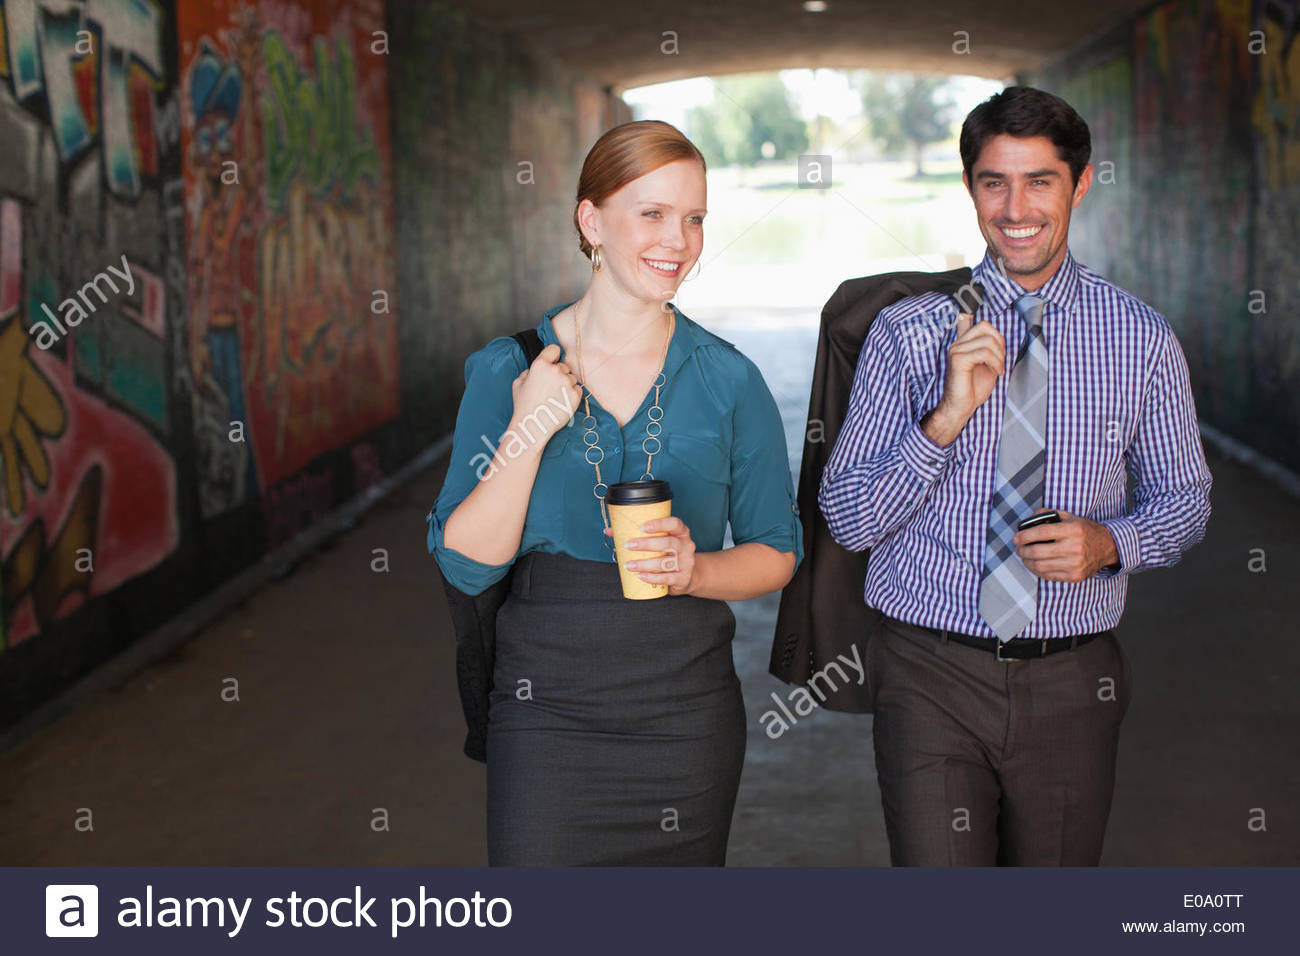 Business people walking together in tunnel - Stock Image